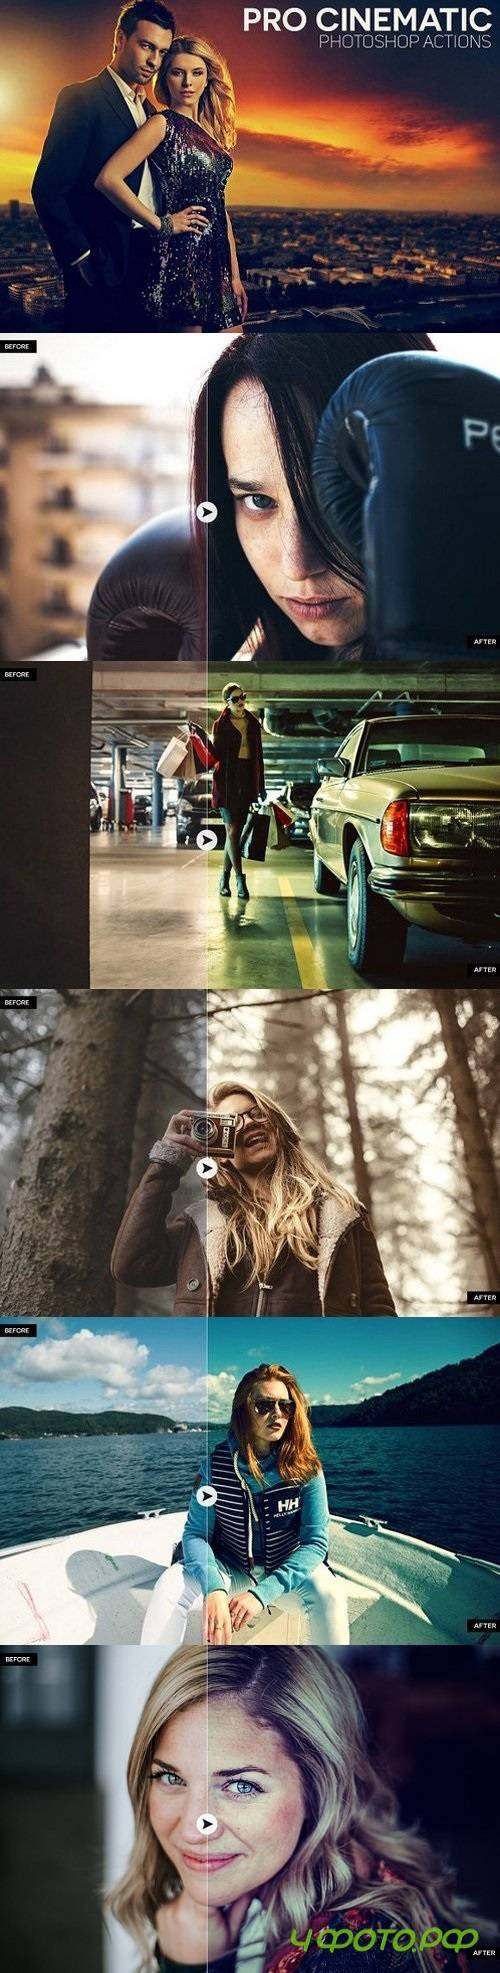 Pro Cinematic Photoshop Actions 1351598